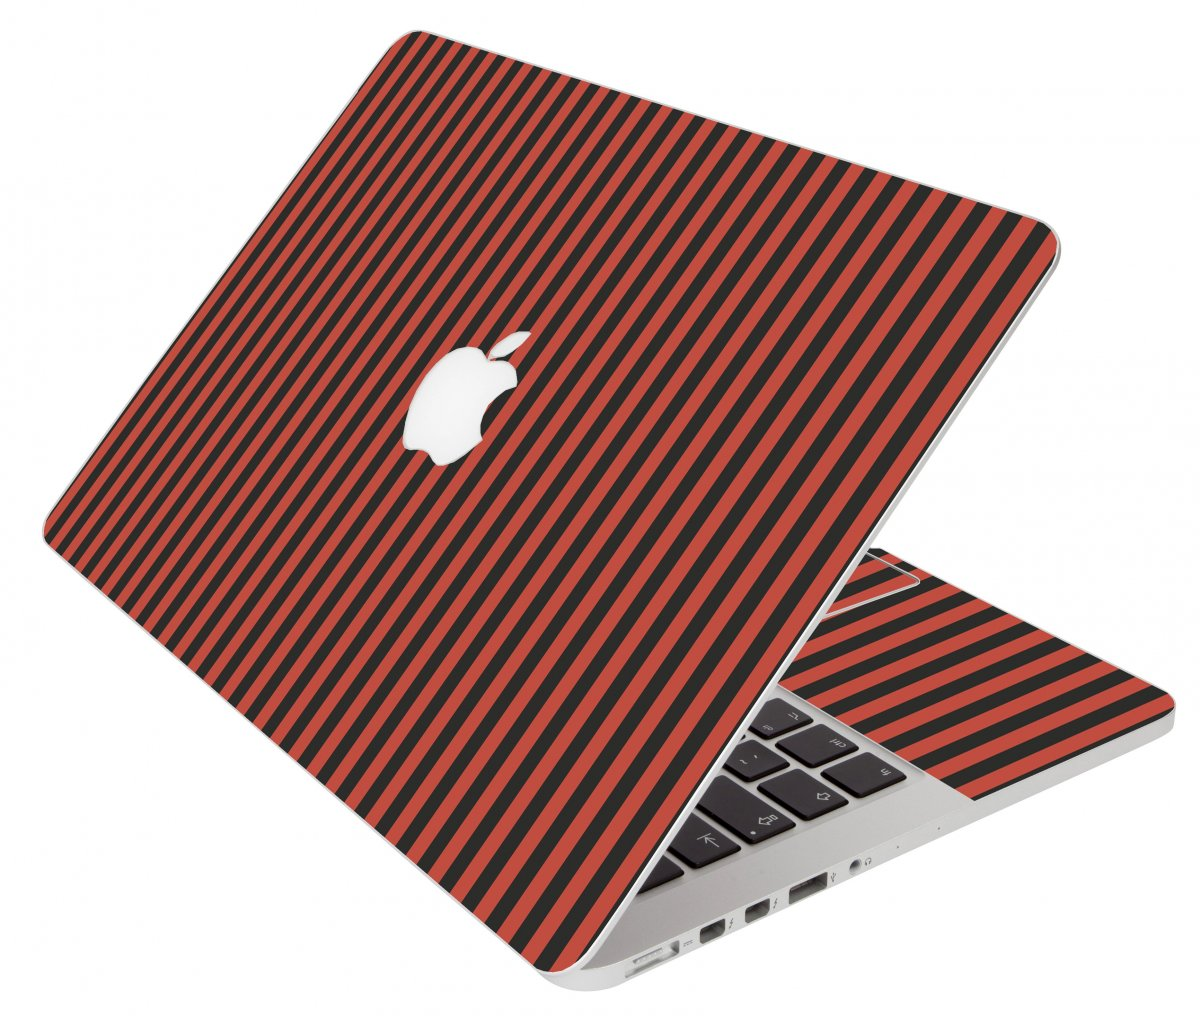 Black Red Versailles Apple Macbook Air 11 A1370 Laptop Skin